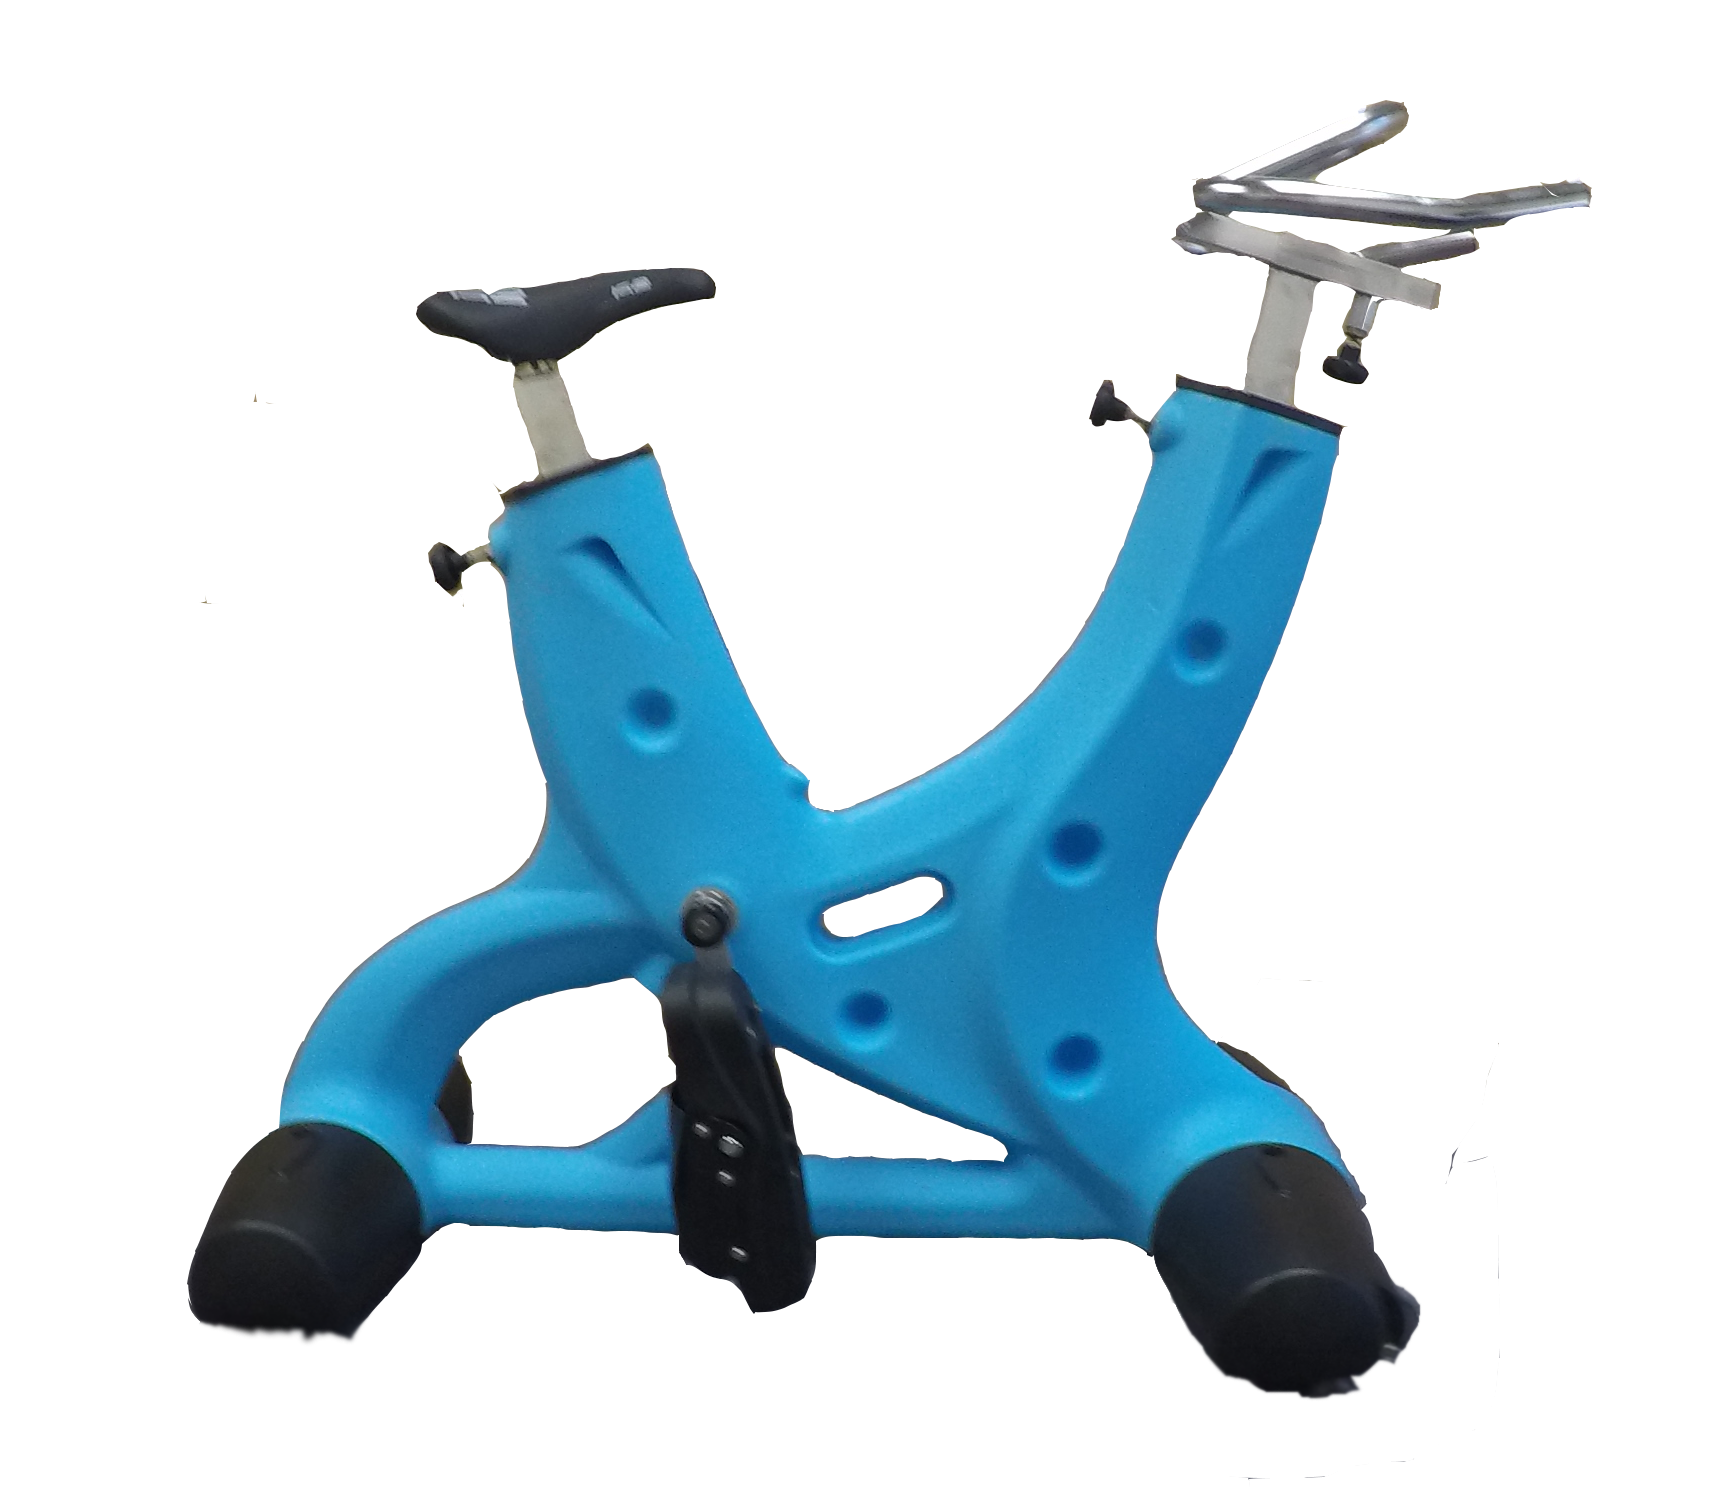 Exercise Bike In Water: Colorado Time Systems Introduces 2nd Generation Water